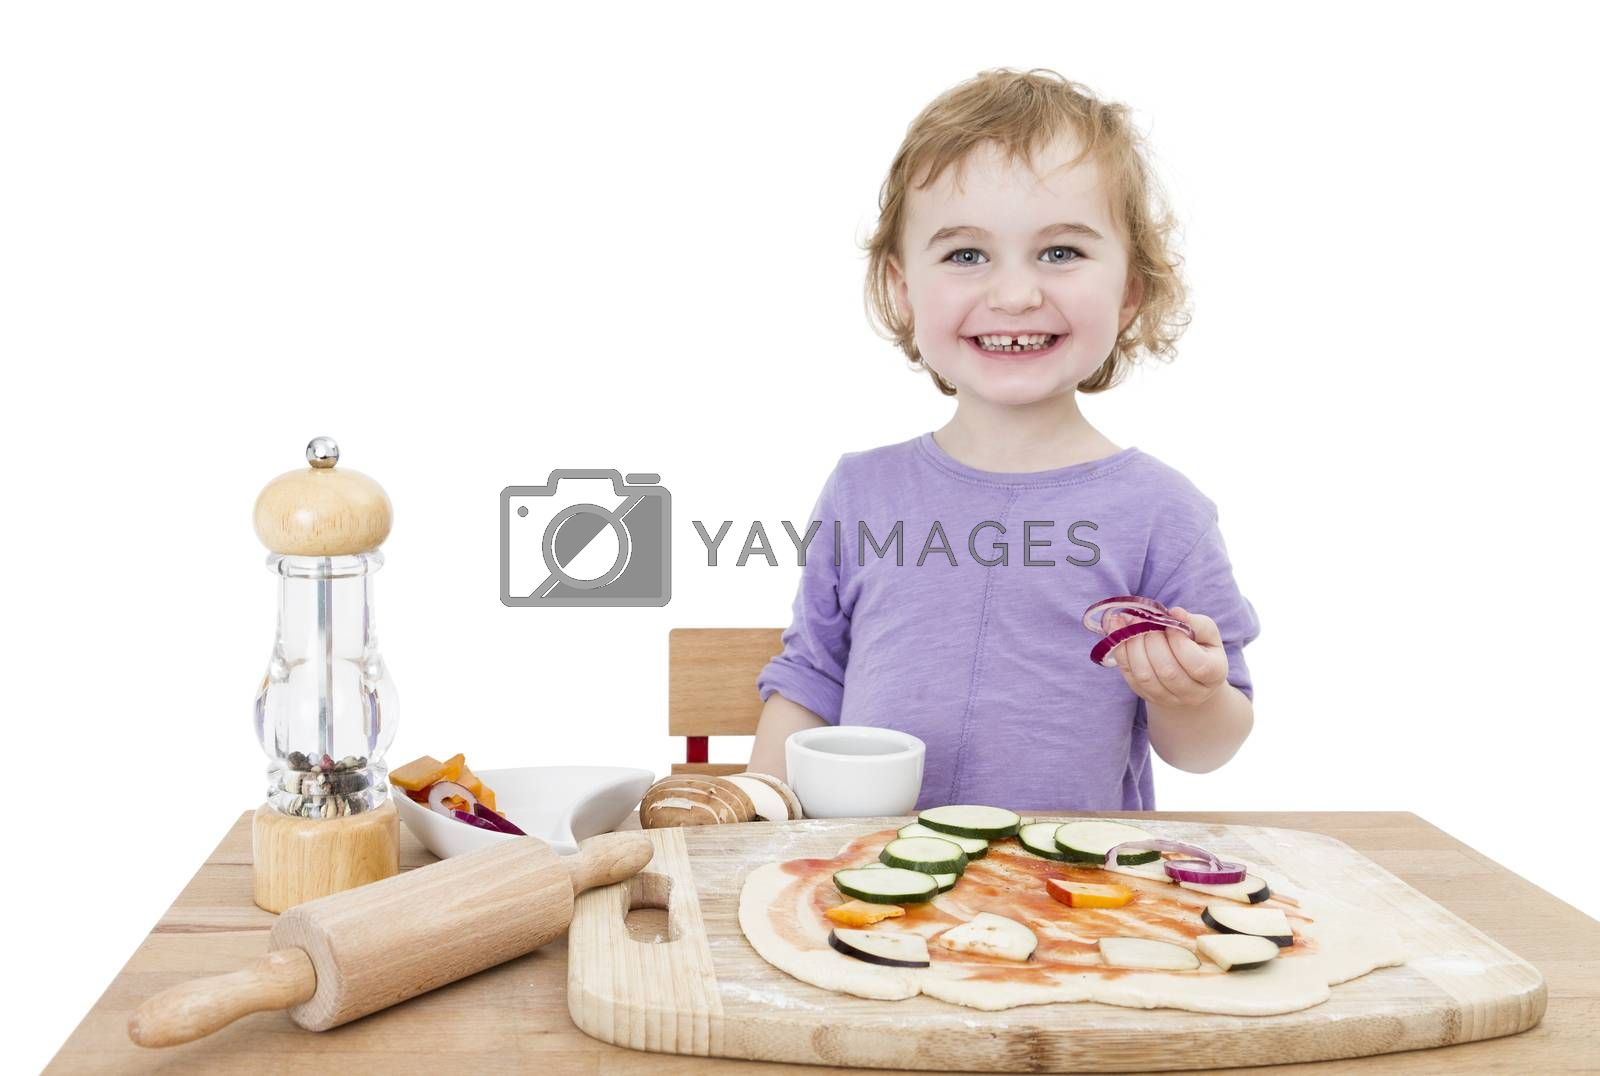 Royalty free image of happy child making pizza by gewoldi